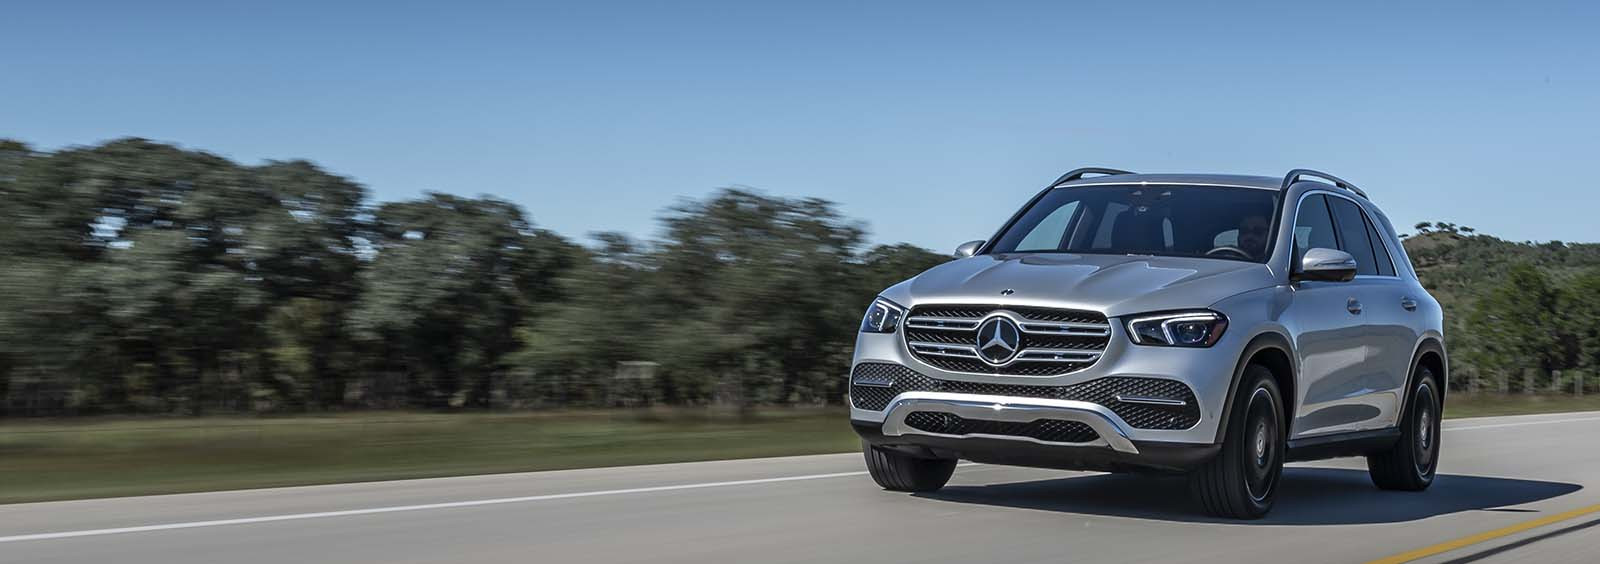 Mercedes-Benz GLE 350de 4Matic EQ Power Premium